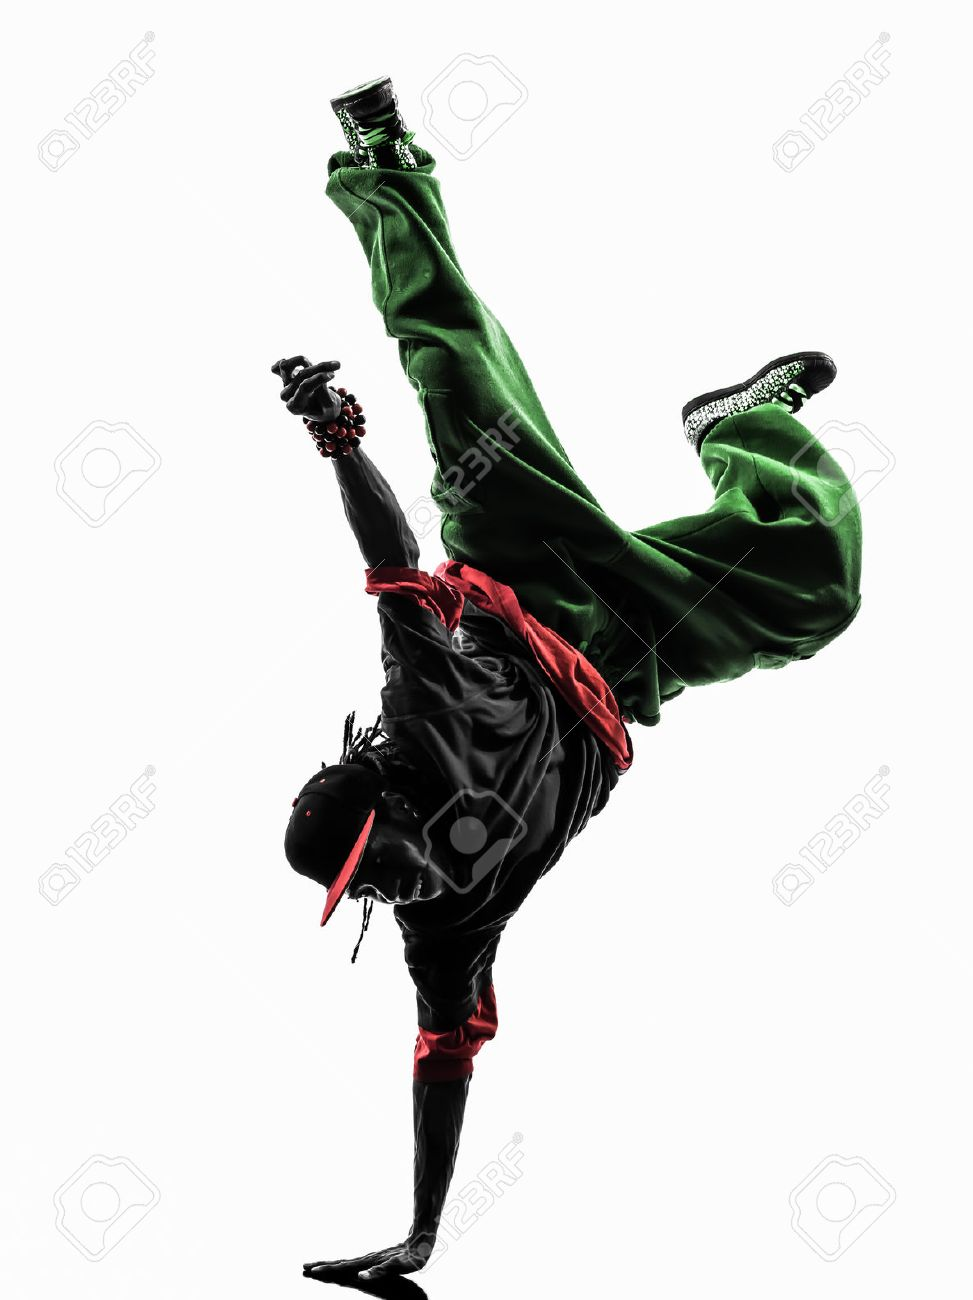 2597ba1d1 one hip hop acrobatic break dancer breakdancing young man handstand  silhouette white background Stock Photo -